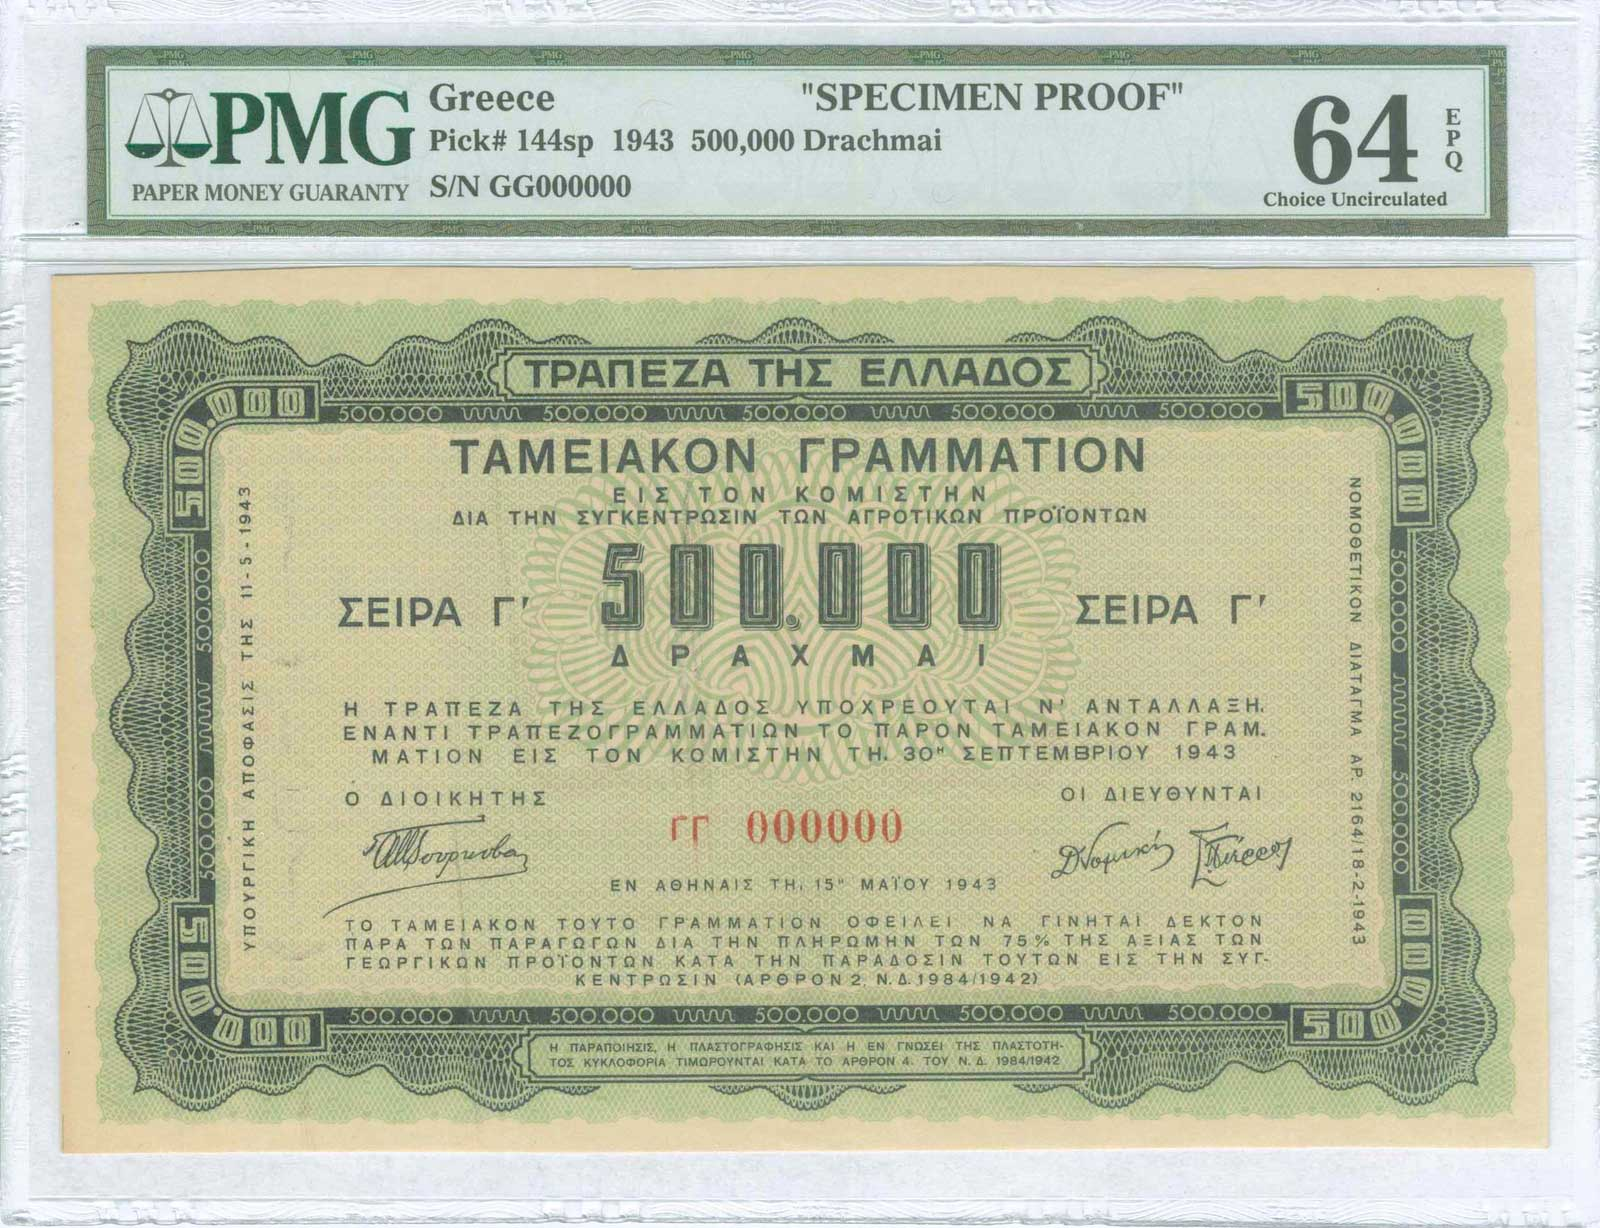 Lot 9385 - GREECE-  PAPER MONEY - BANKNOTES TREASURY BONDS & FISCAL NOTES -  A. Karamitsos Public & LIVE Bid Auction 610 Coins, Medals & Banknotes